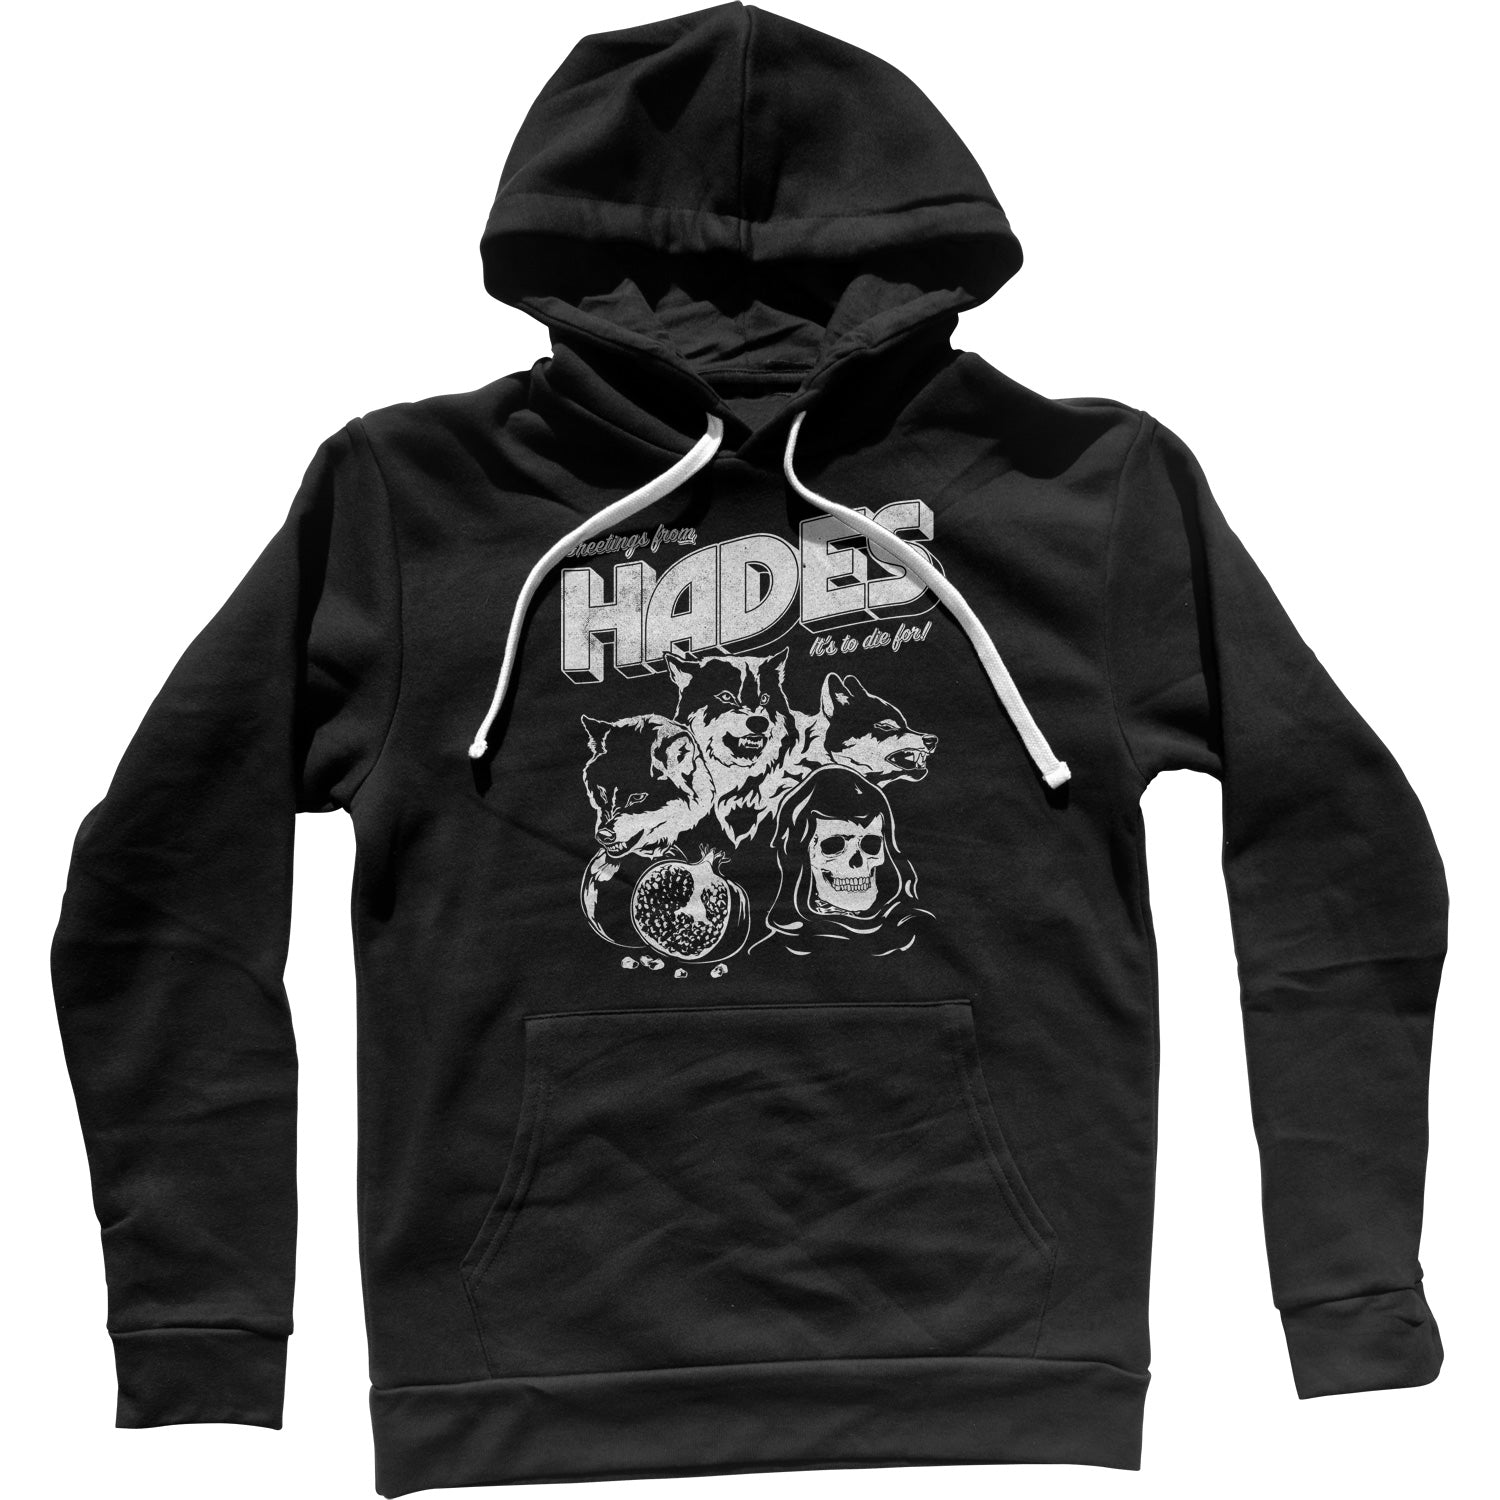 Greetings from Hades Unisex Hoodie